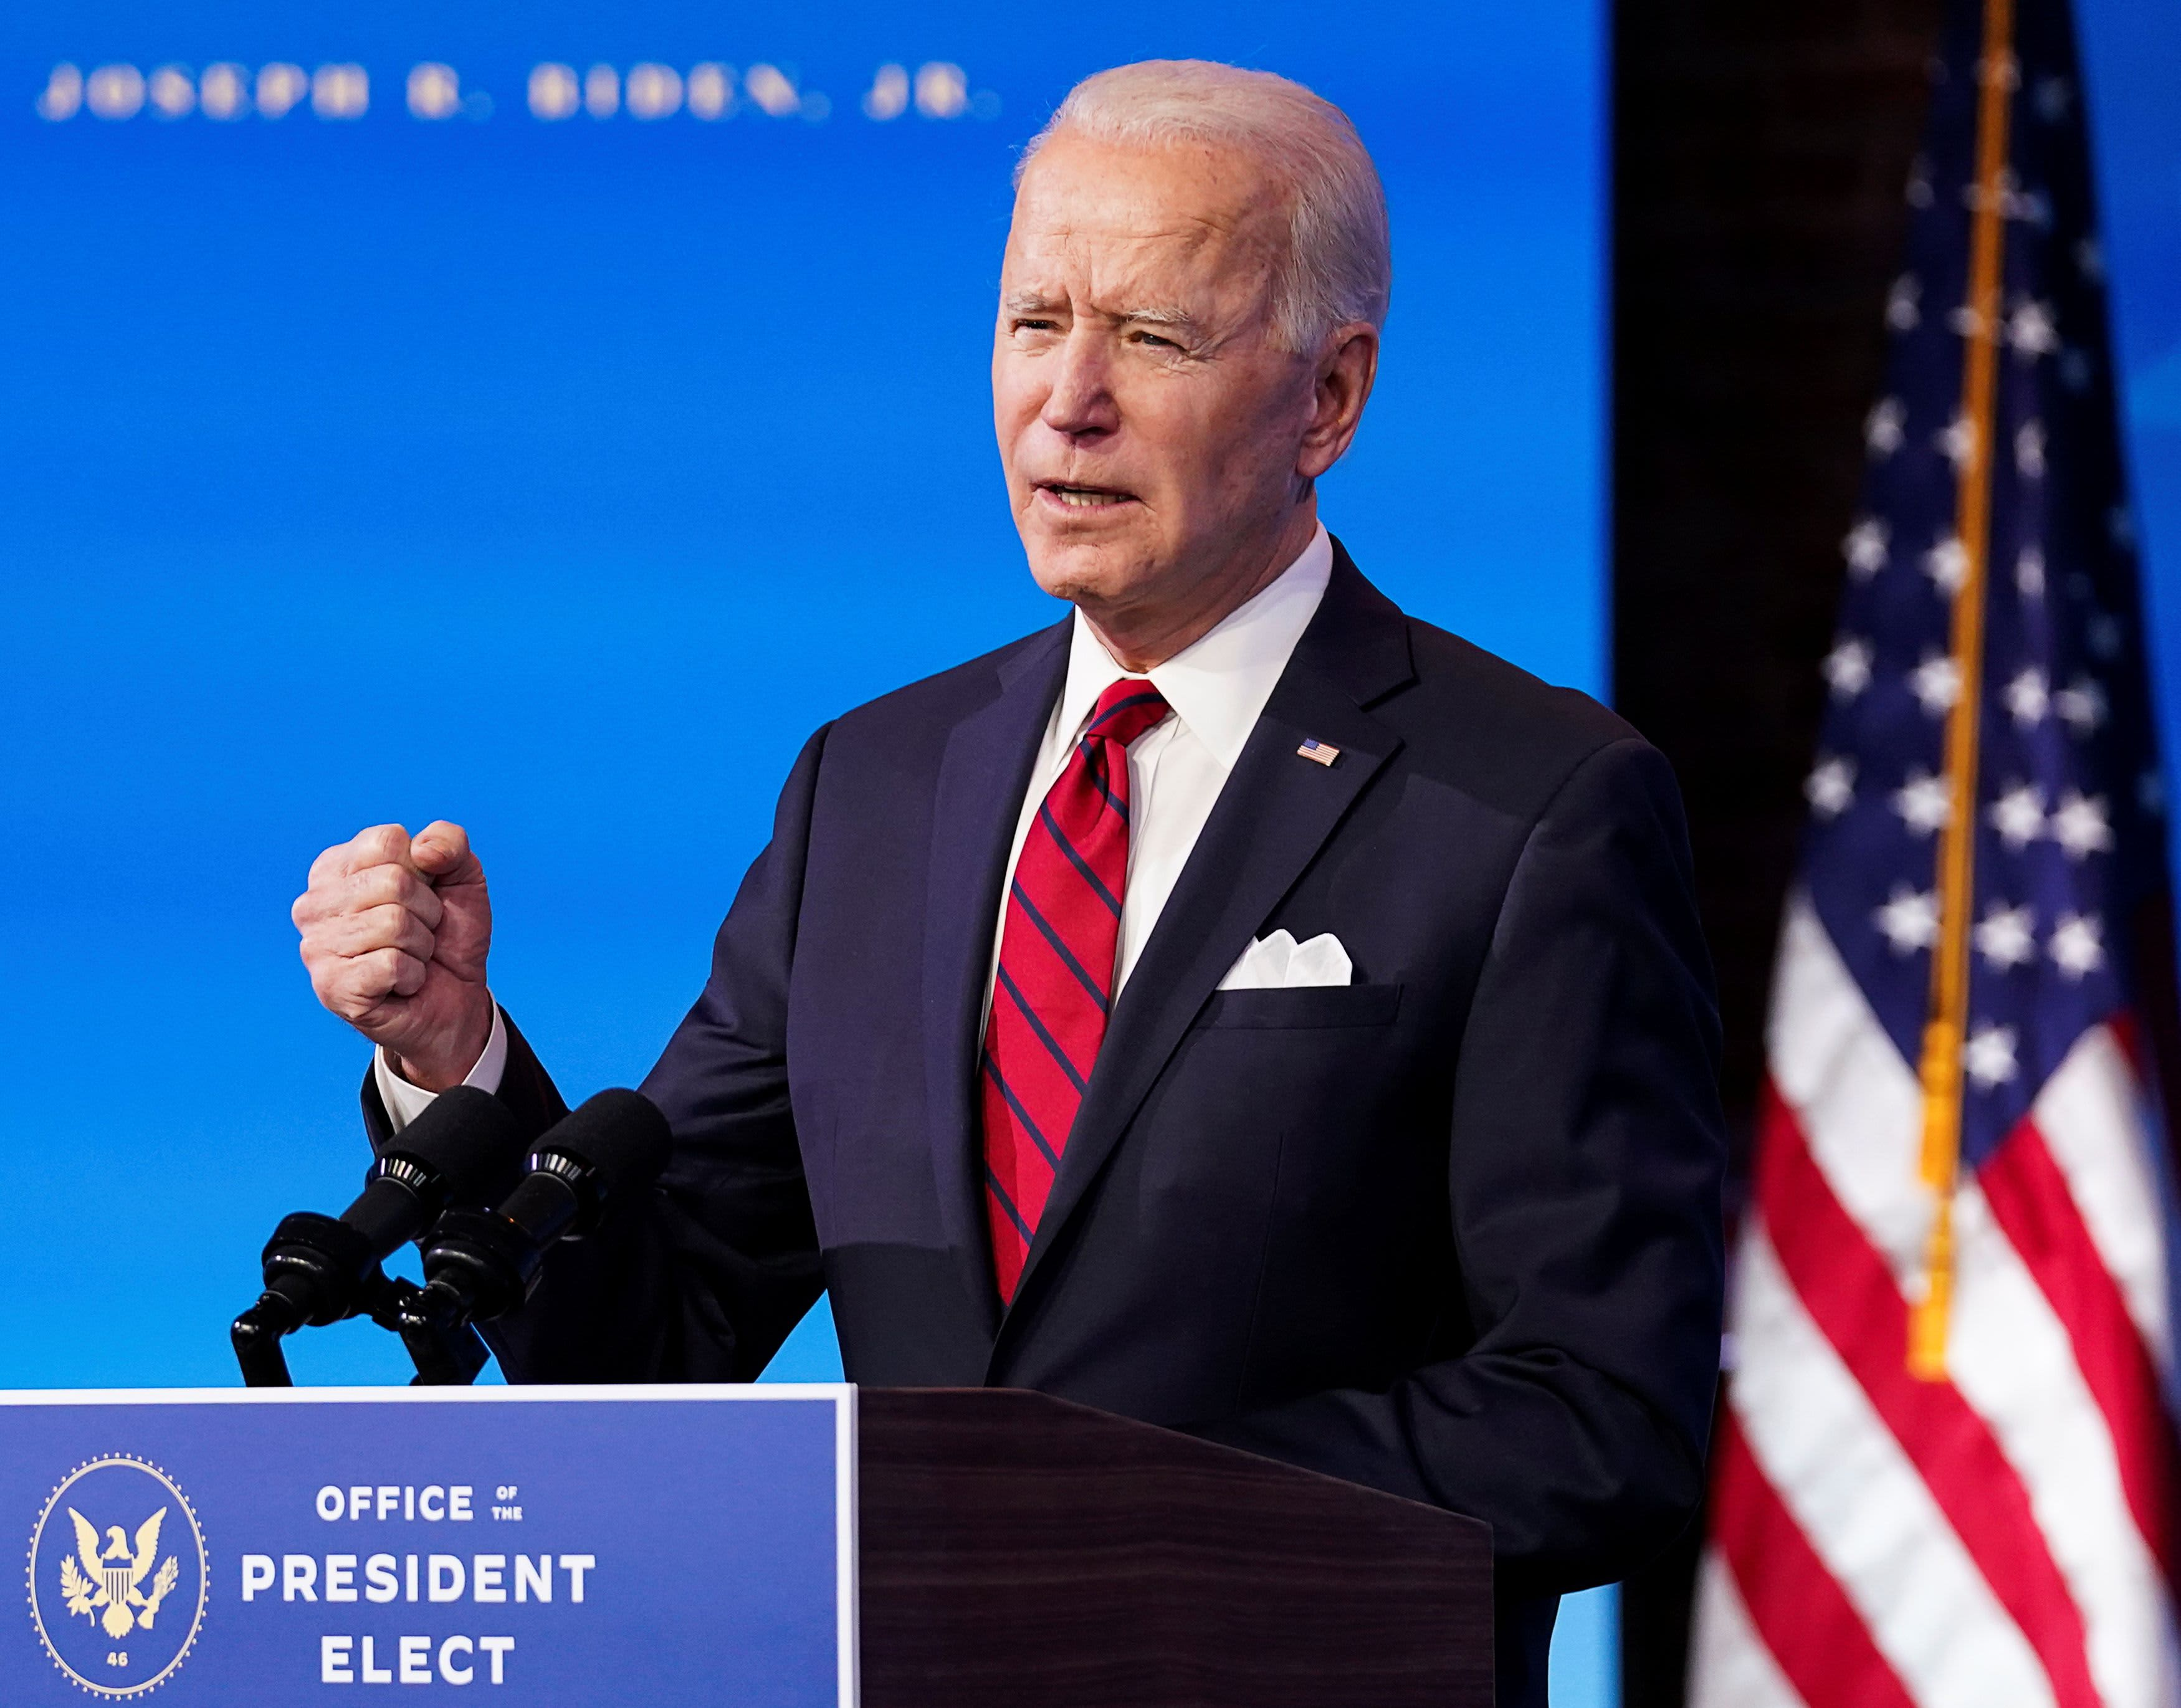 Biden is already facing pressure to scale back his .9 trillion Covid relief plan